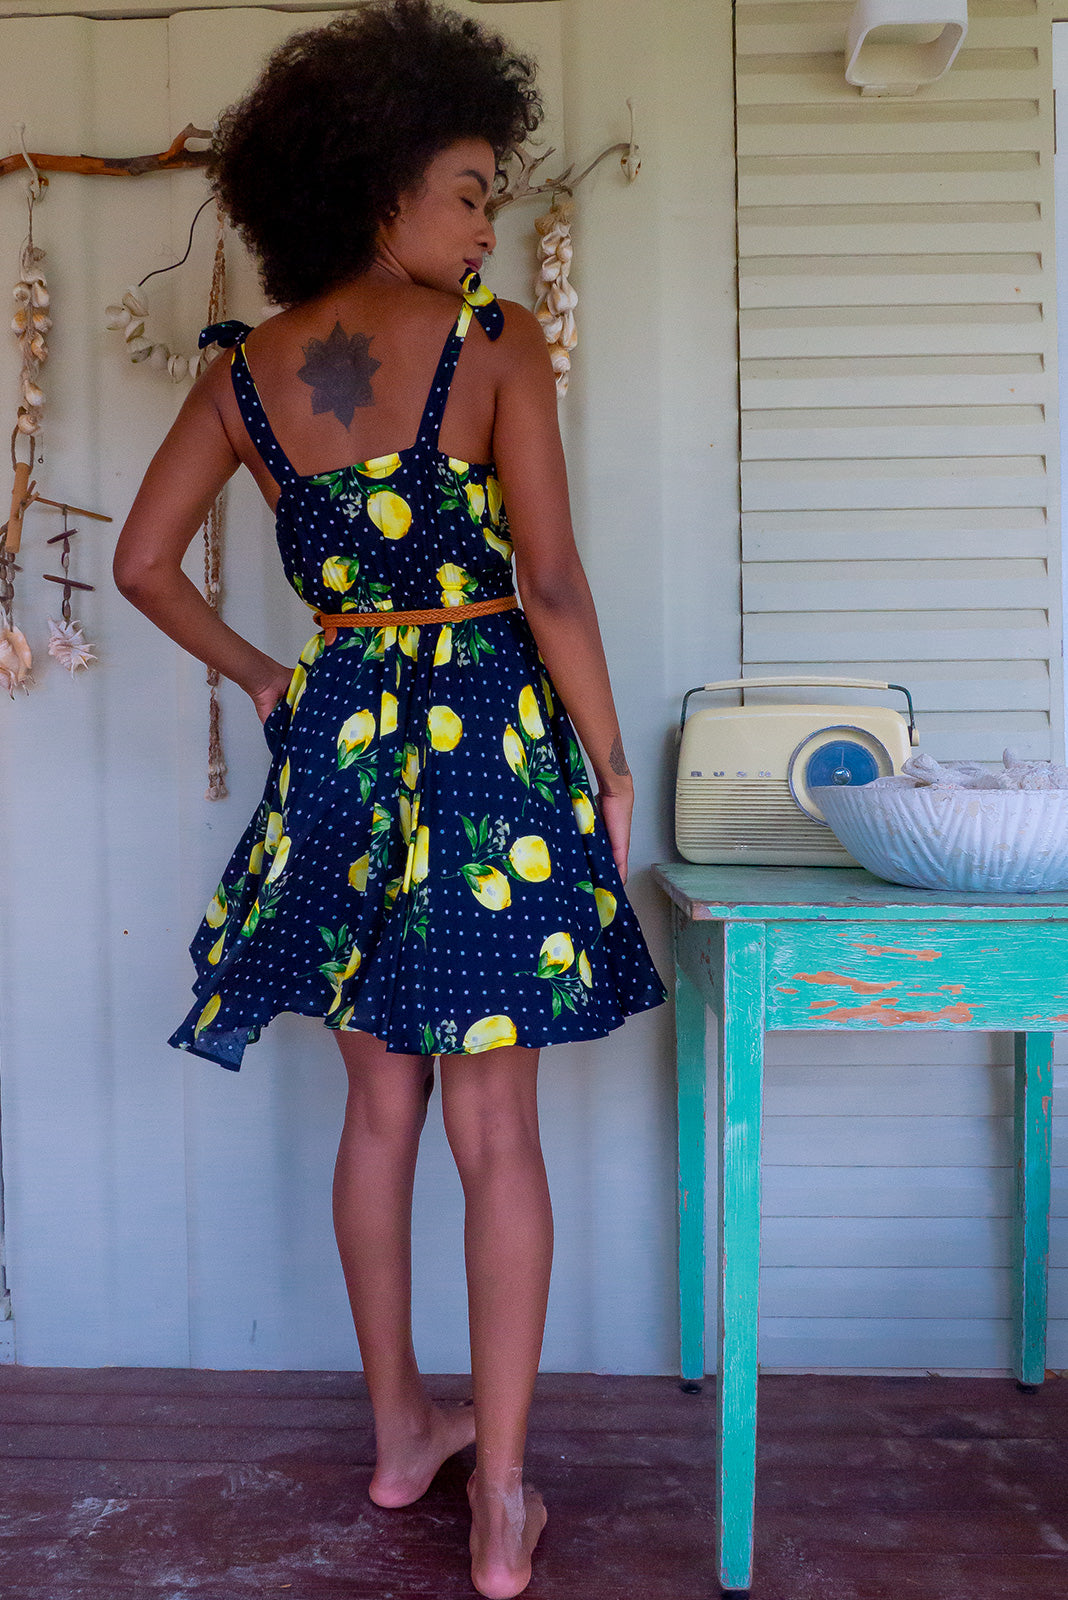 The Ruby Tuesday Limoncello Ink Dress is a retro mini dress featuring straight neckline, tie up shoulder straps, functional button front, side pockets, elasticated waist back , 100% viscose in inky base with cute lemons and polkadot print and woven belt included.